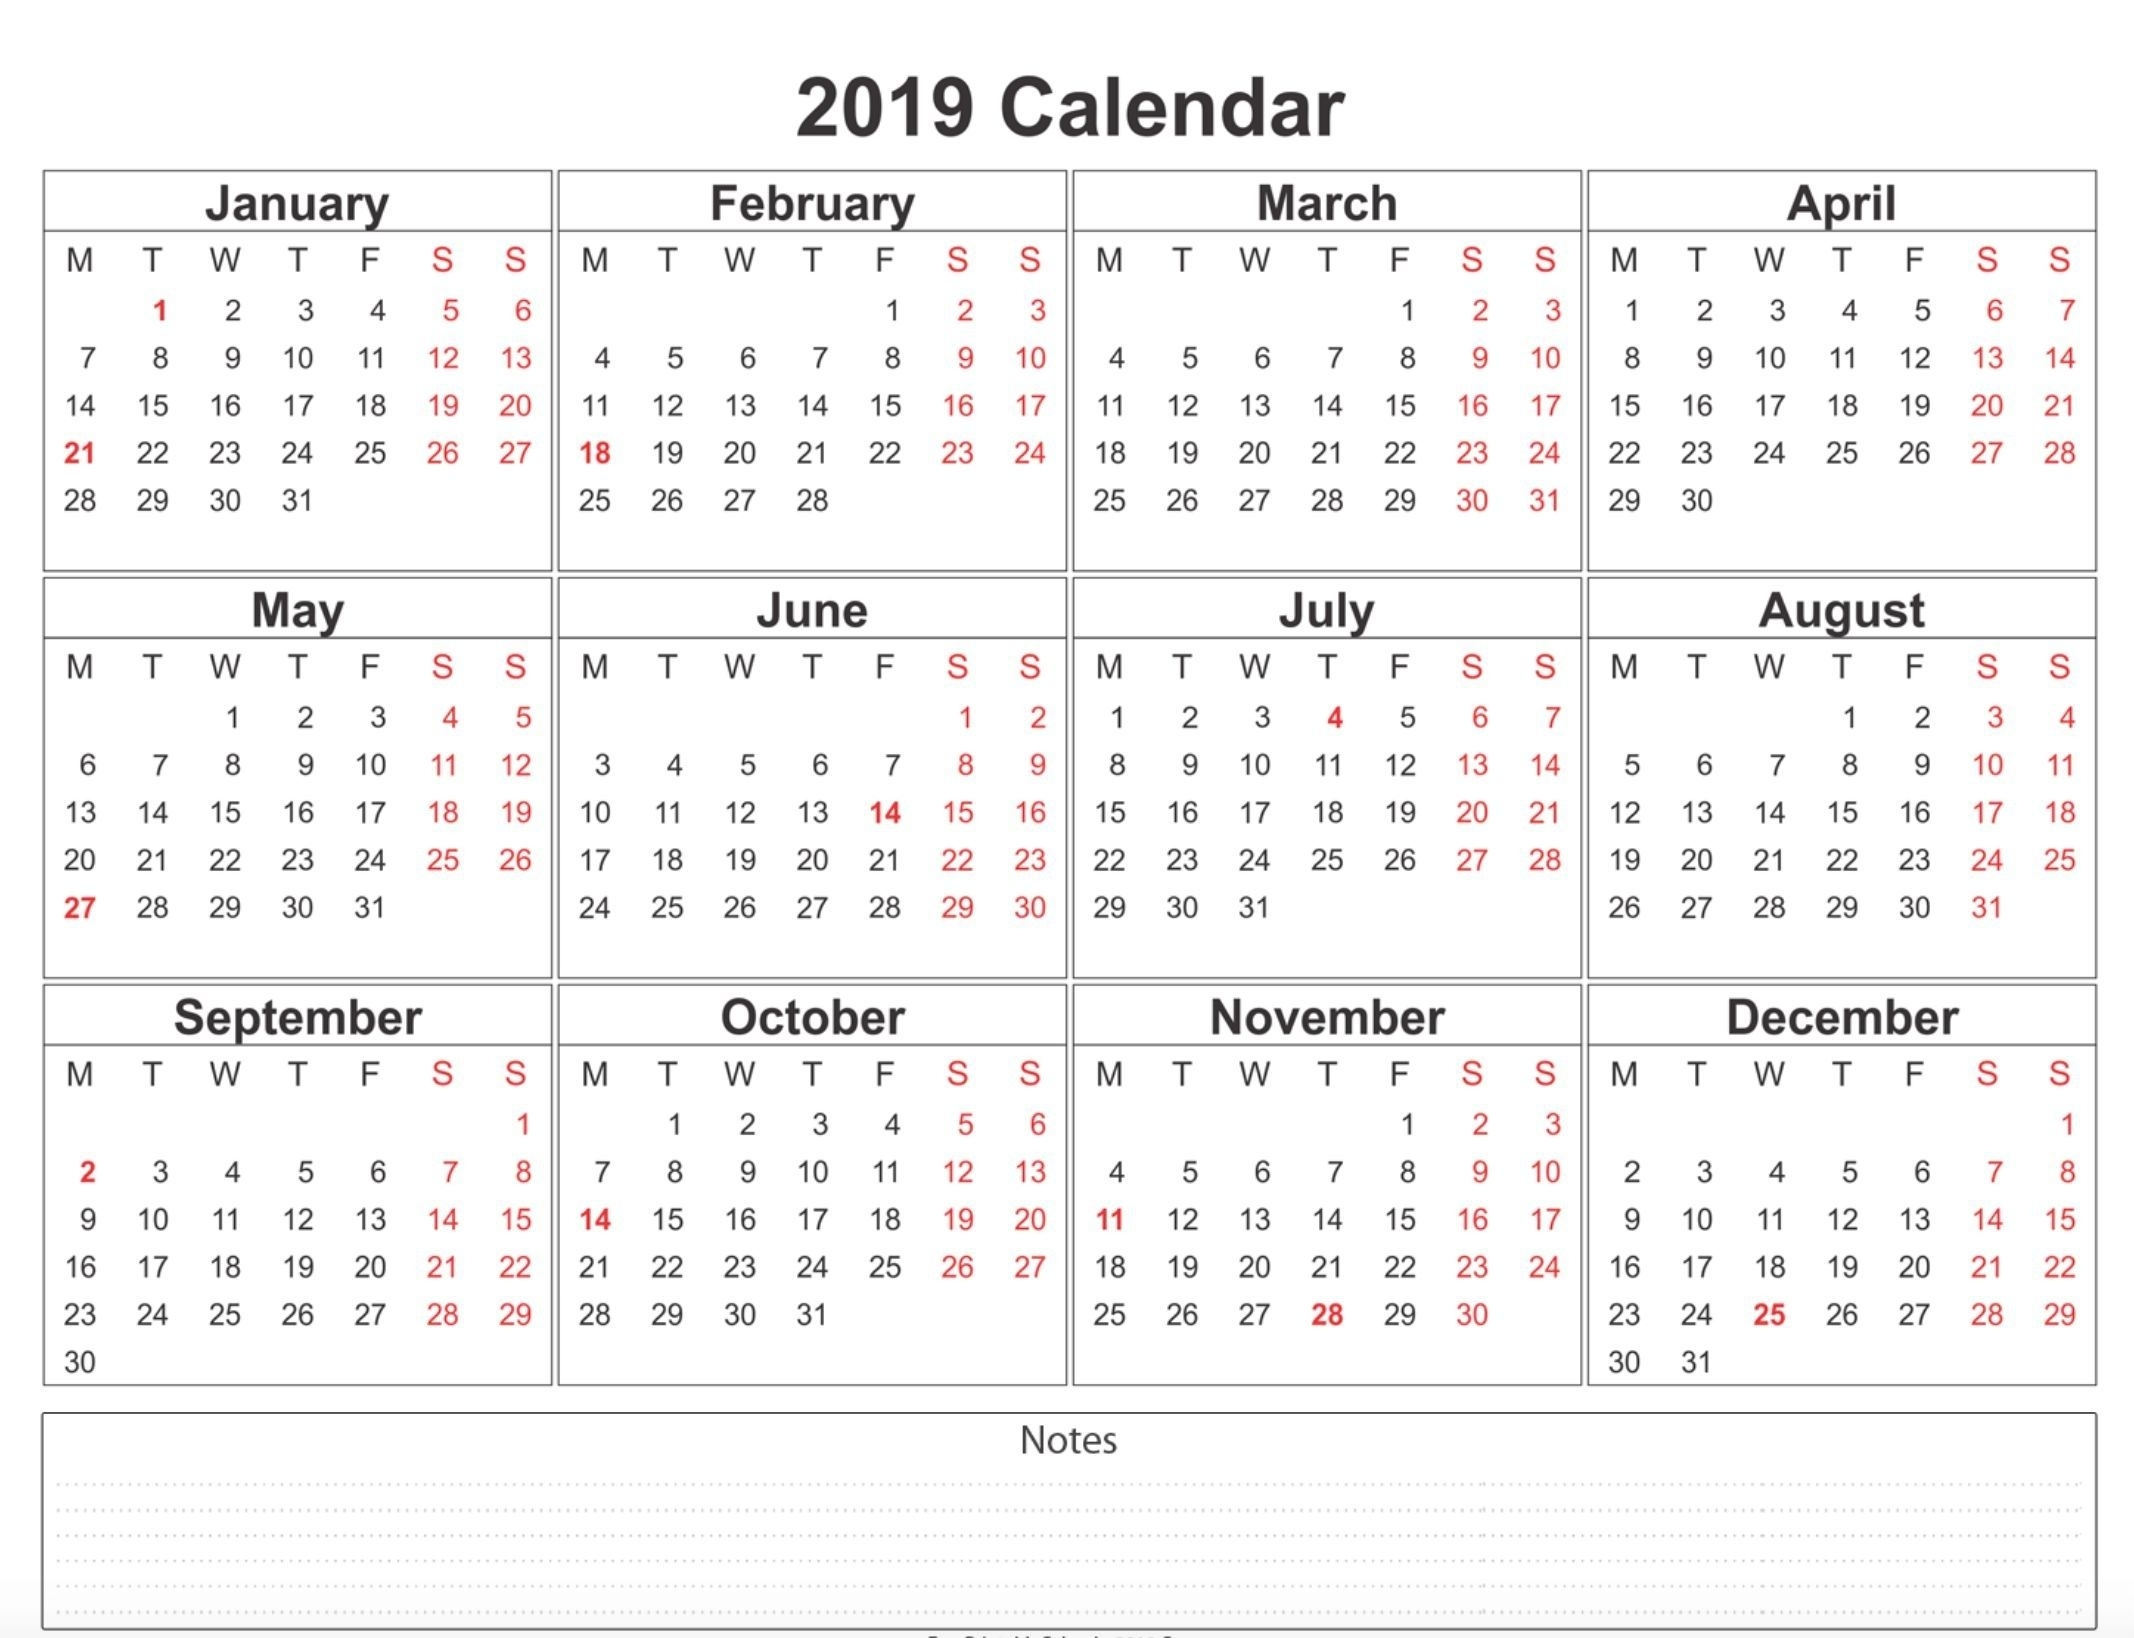 2019 Weekly Calendar Printable | 2019 Calendars | 12 Month Calendar regarding Free Printable 12 Month Blank Calendar